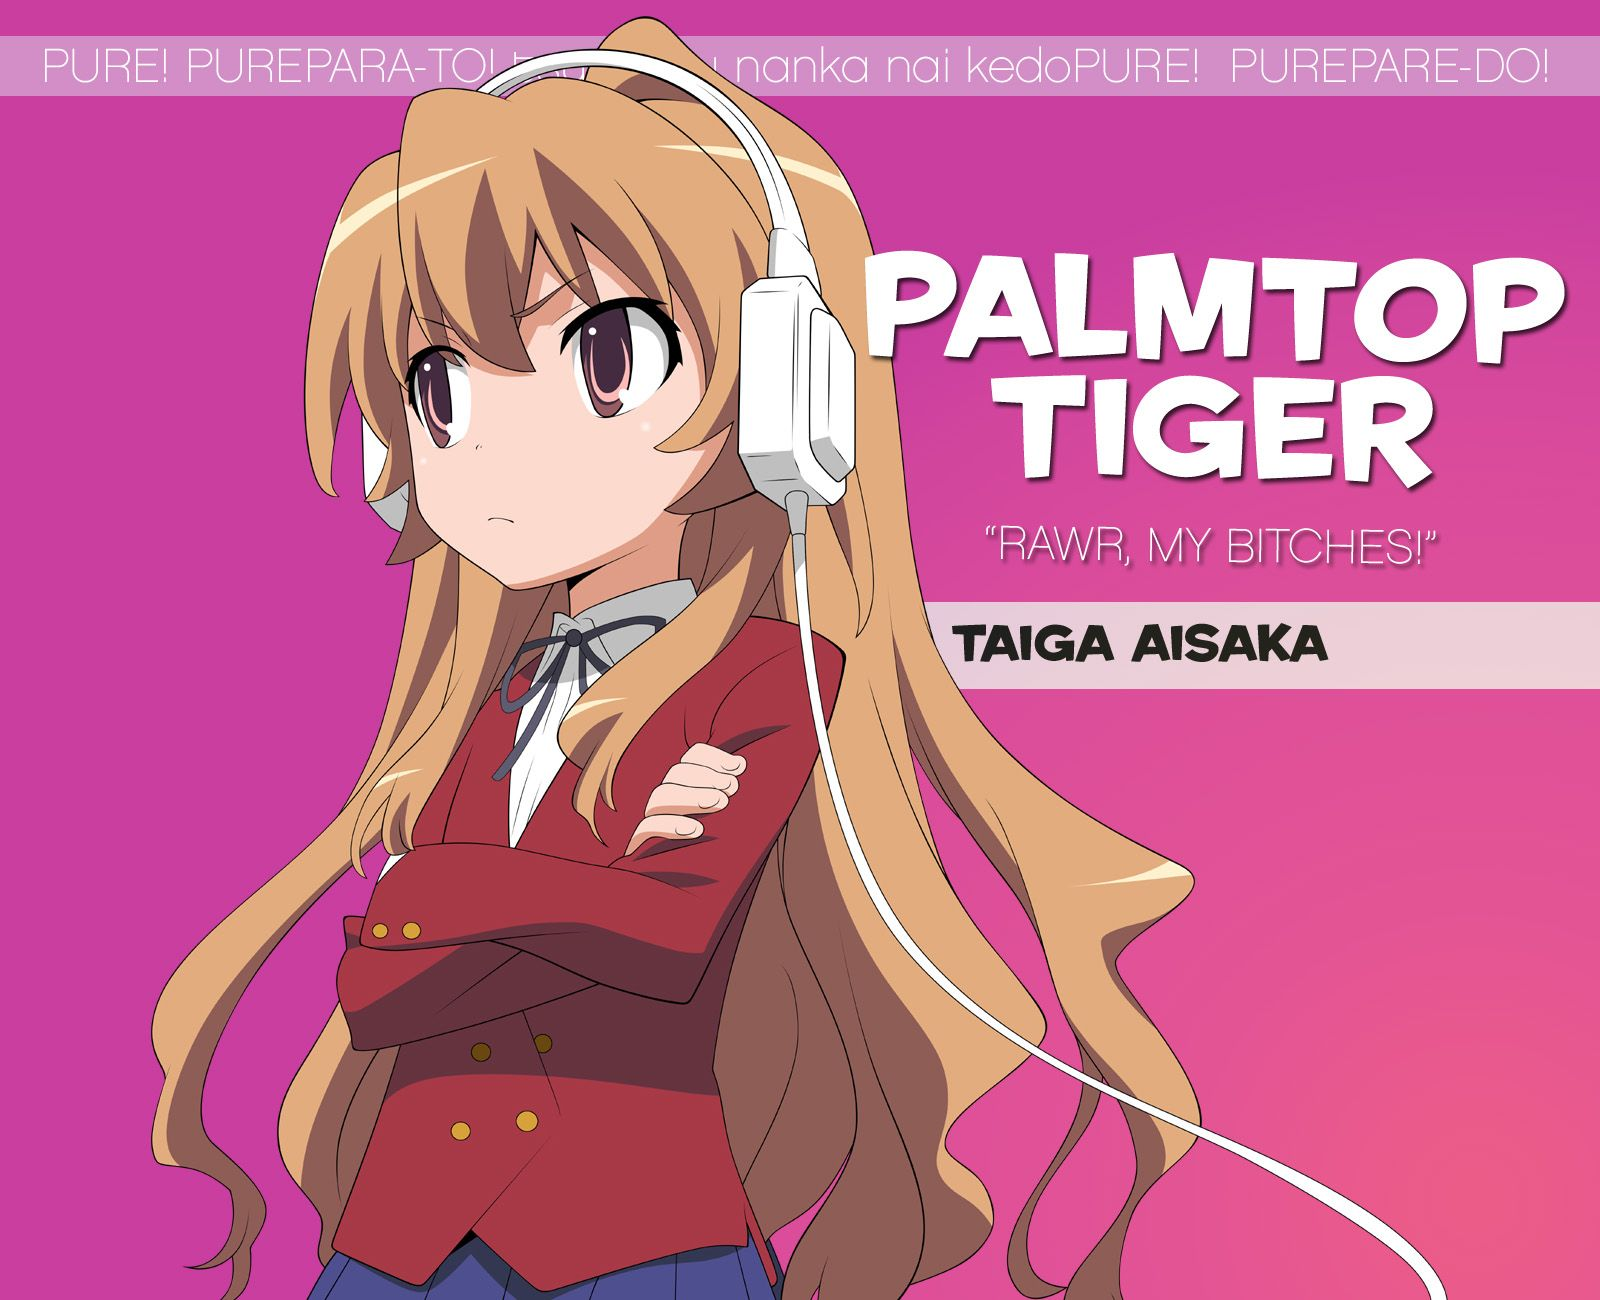 TORADORA! this anime is a slice of life anime, one of my